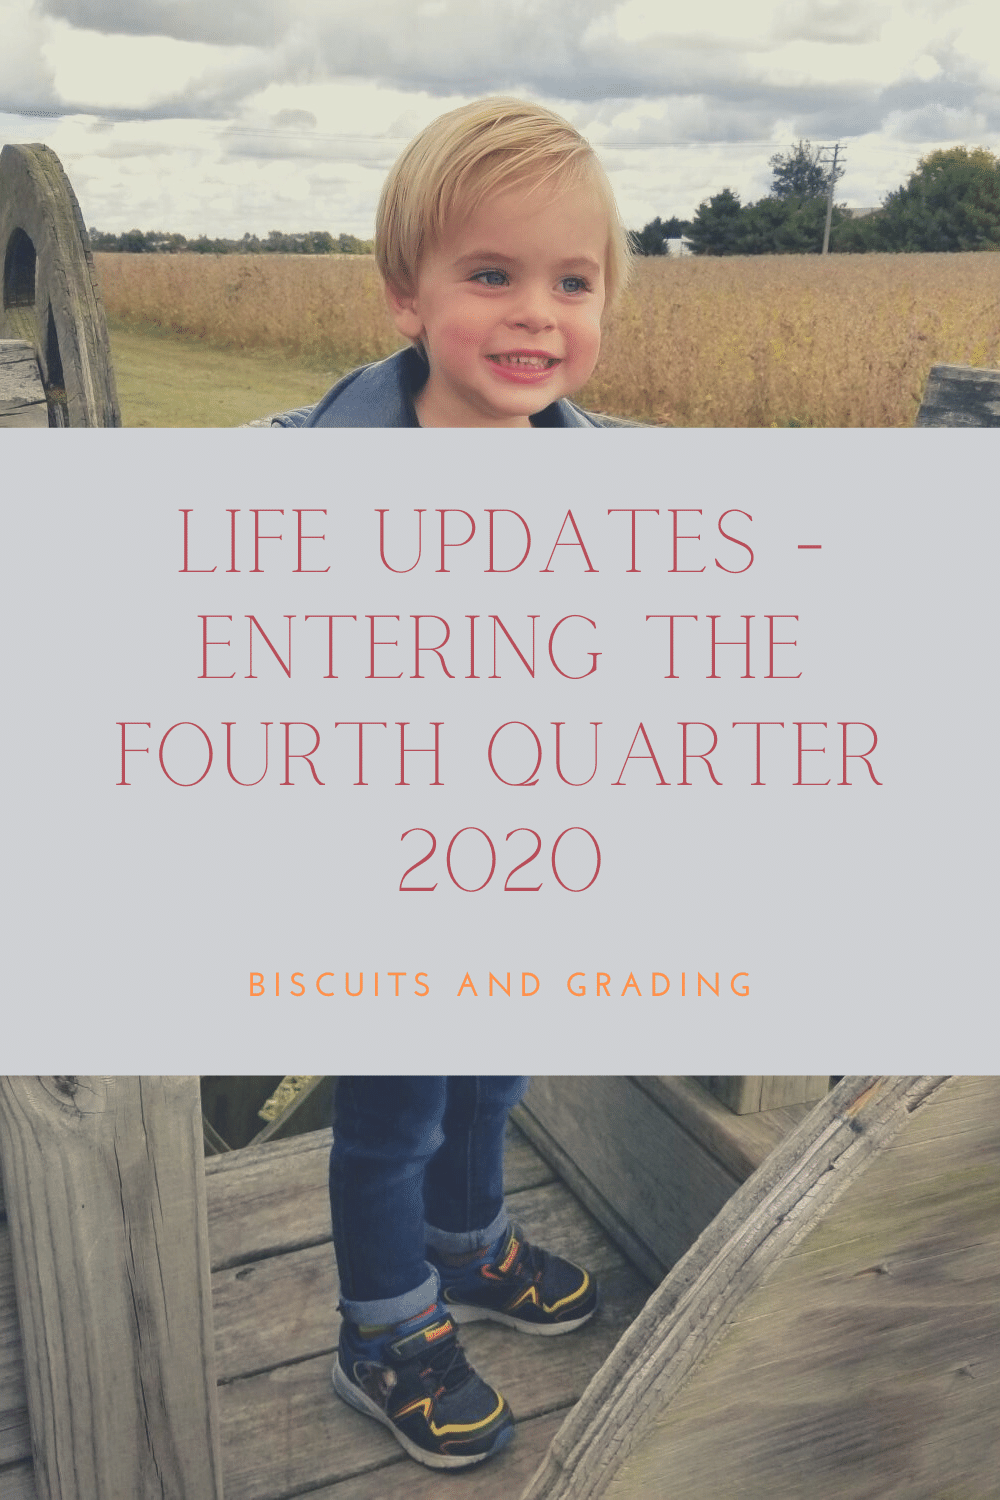 Life Updates - Entering the Fourth Quarter 2020